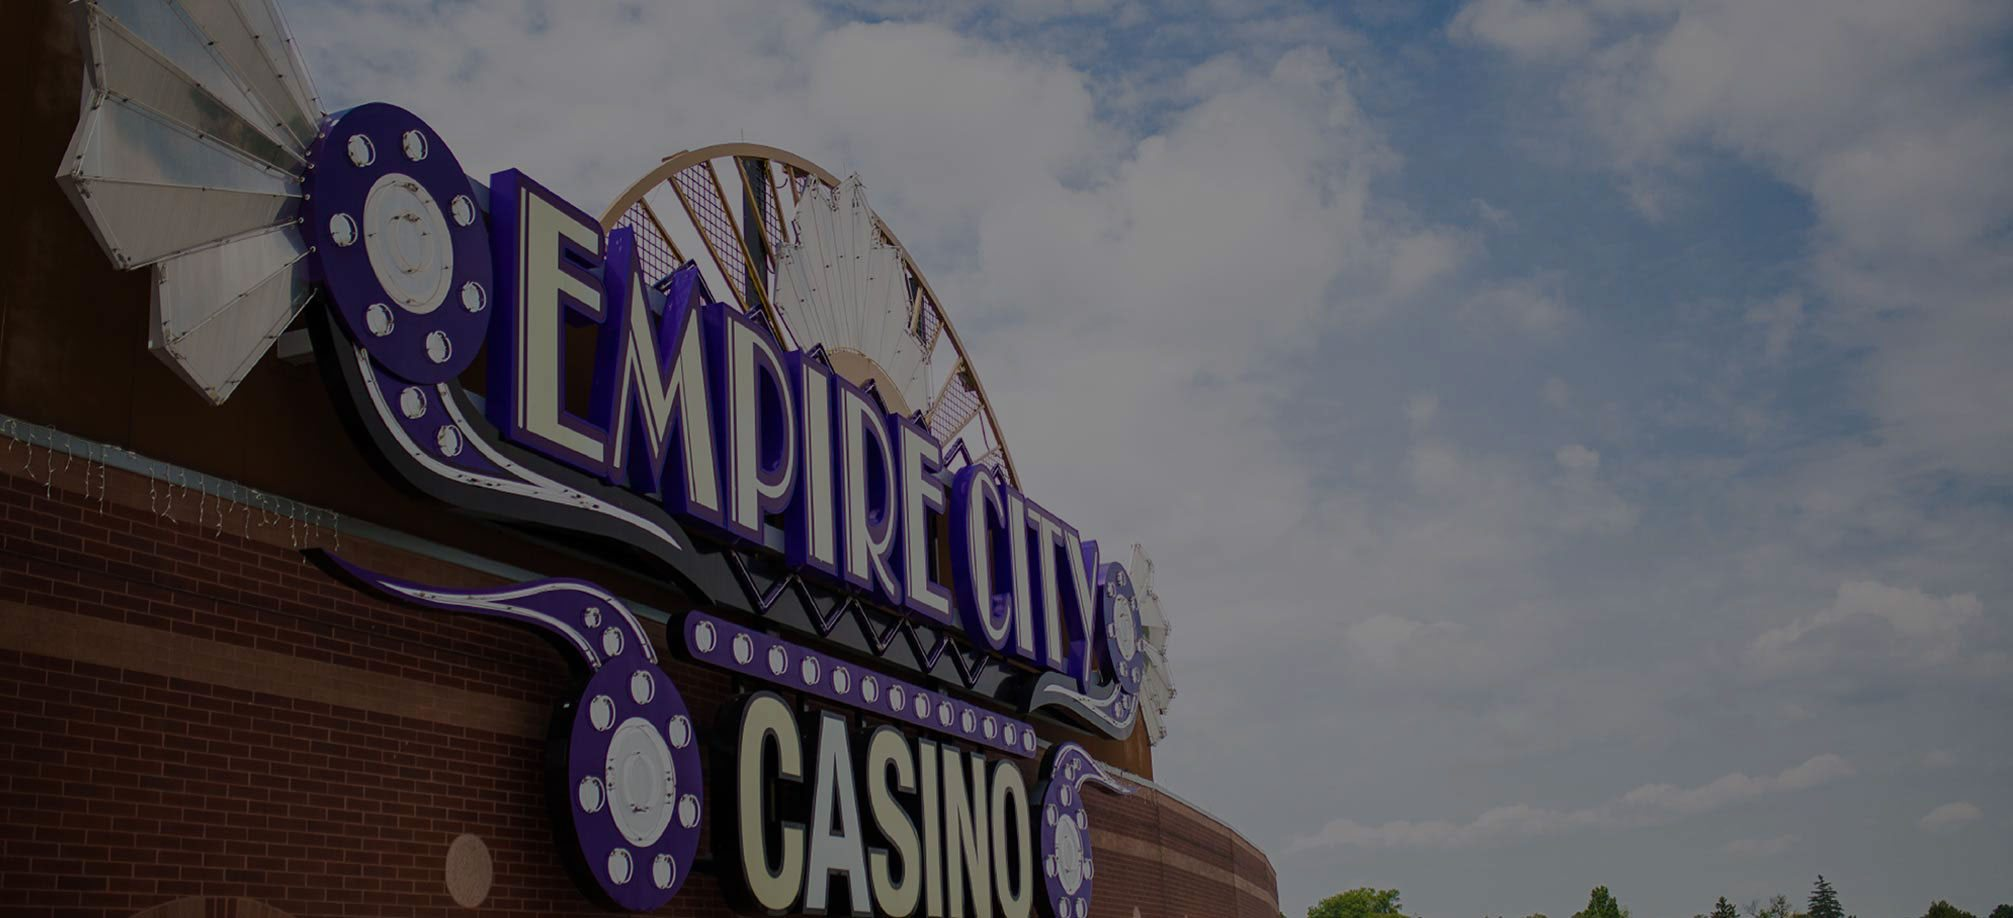 Exterior photo of the Empire City Casino sign on the side of the building